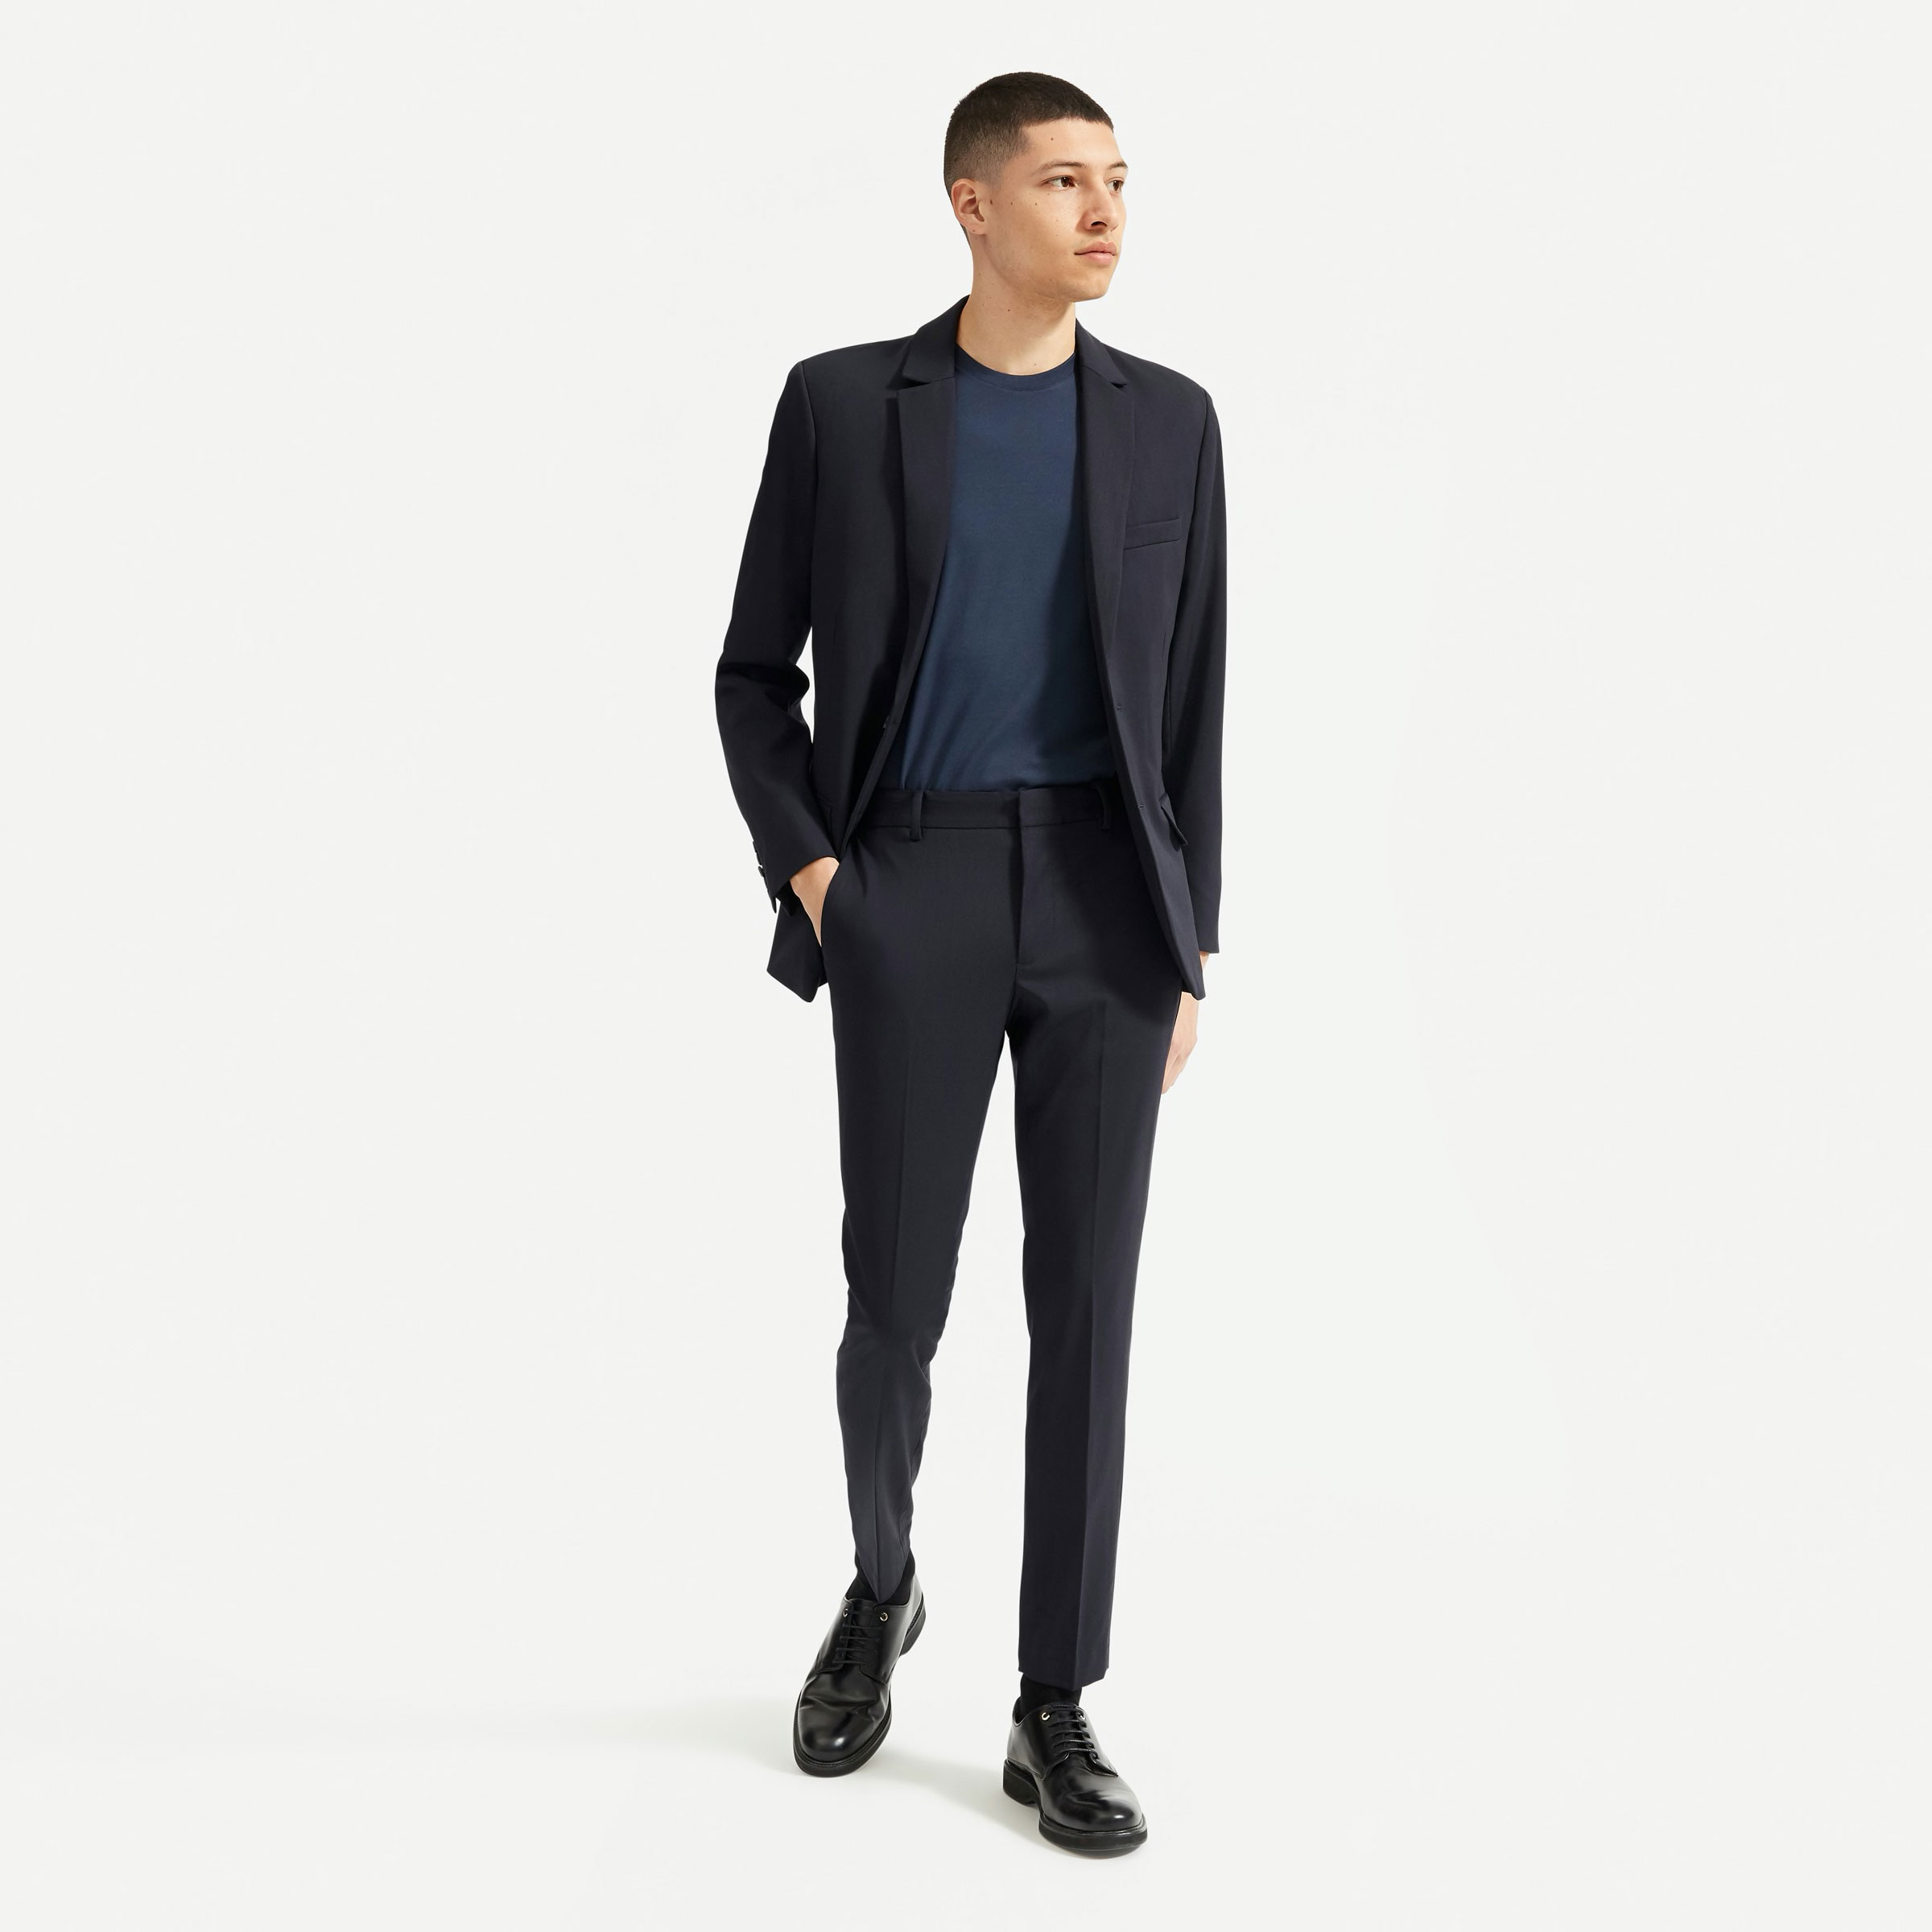 Everlane Italian Wool Suit - Affordable Men's Suit